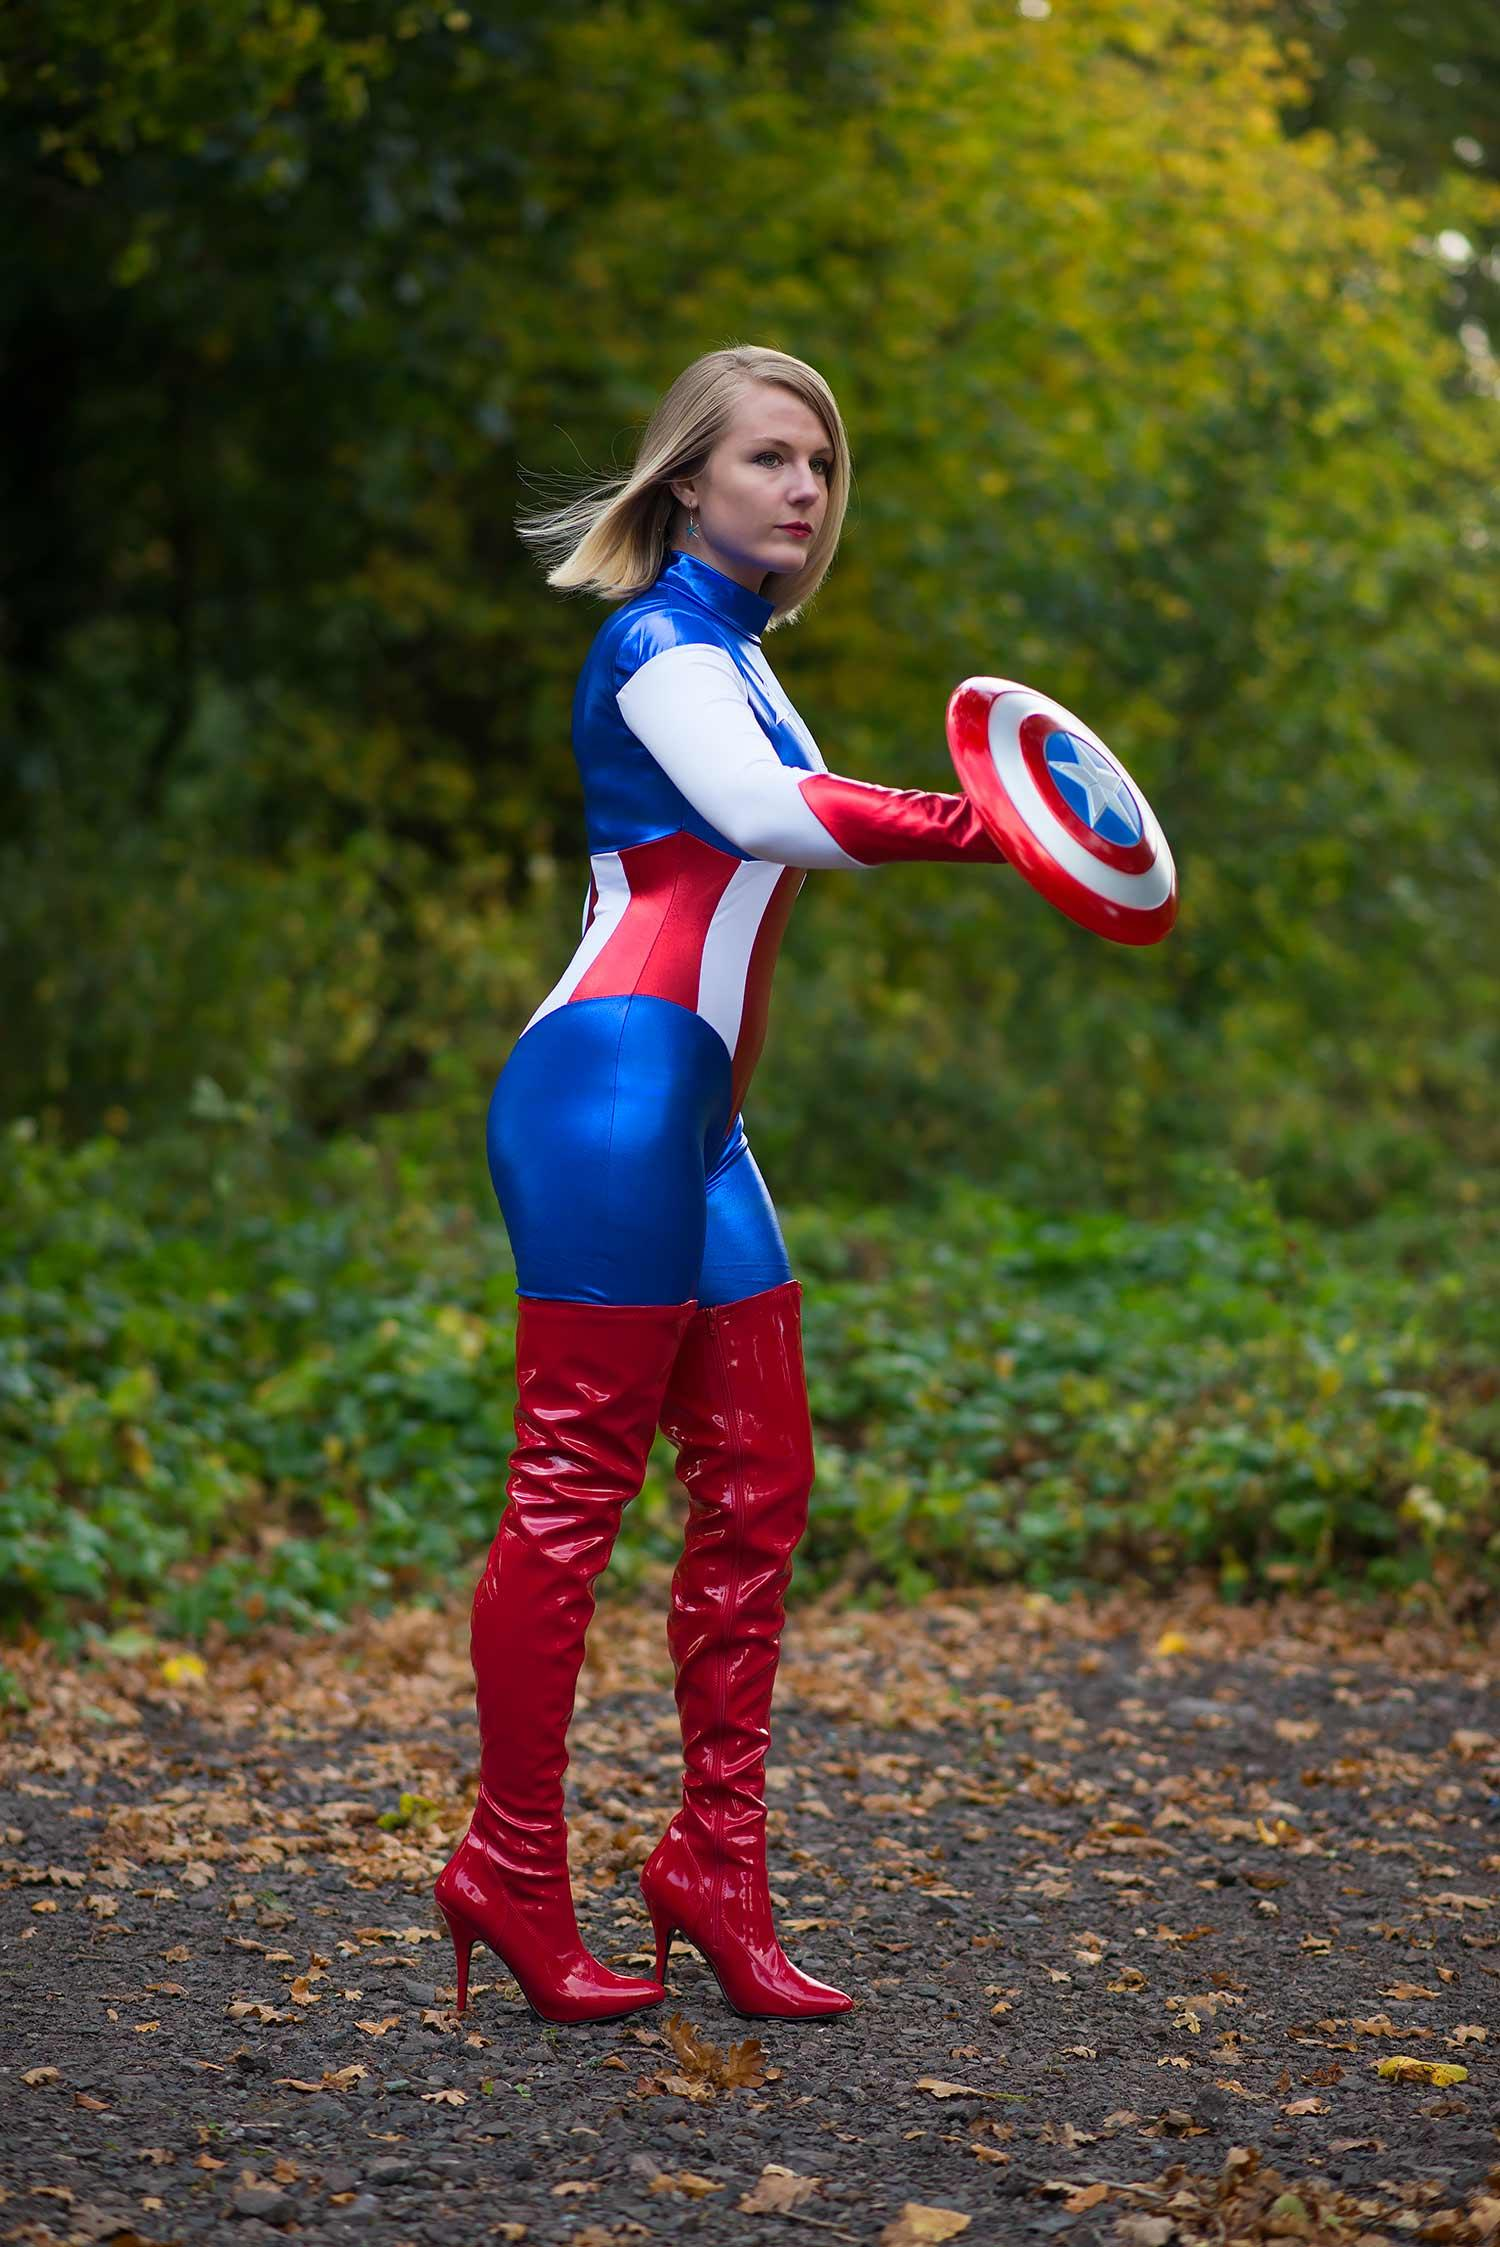 lorna-burford-miss-captain-america-costume-girl-4